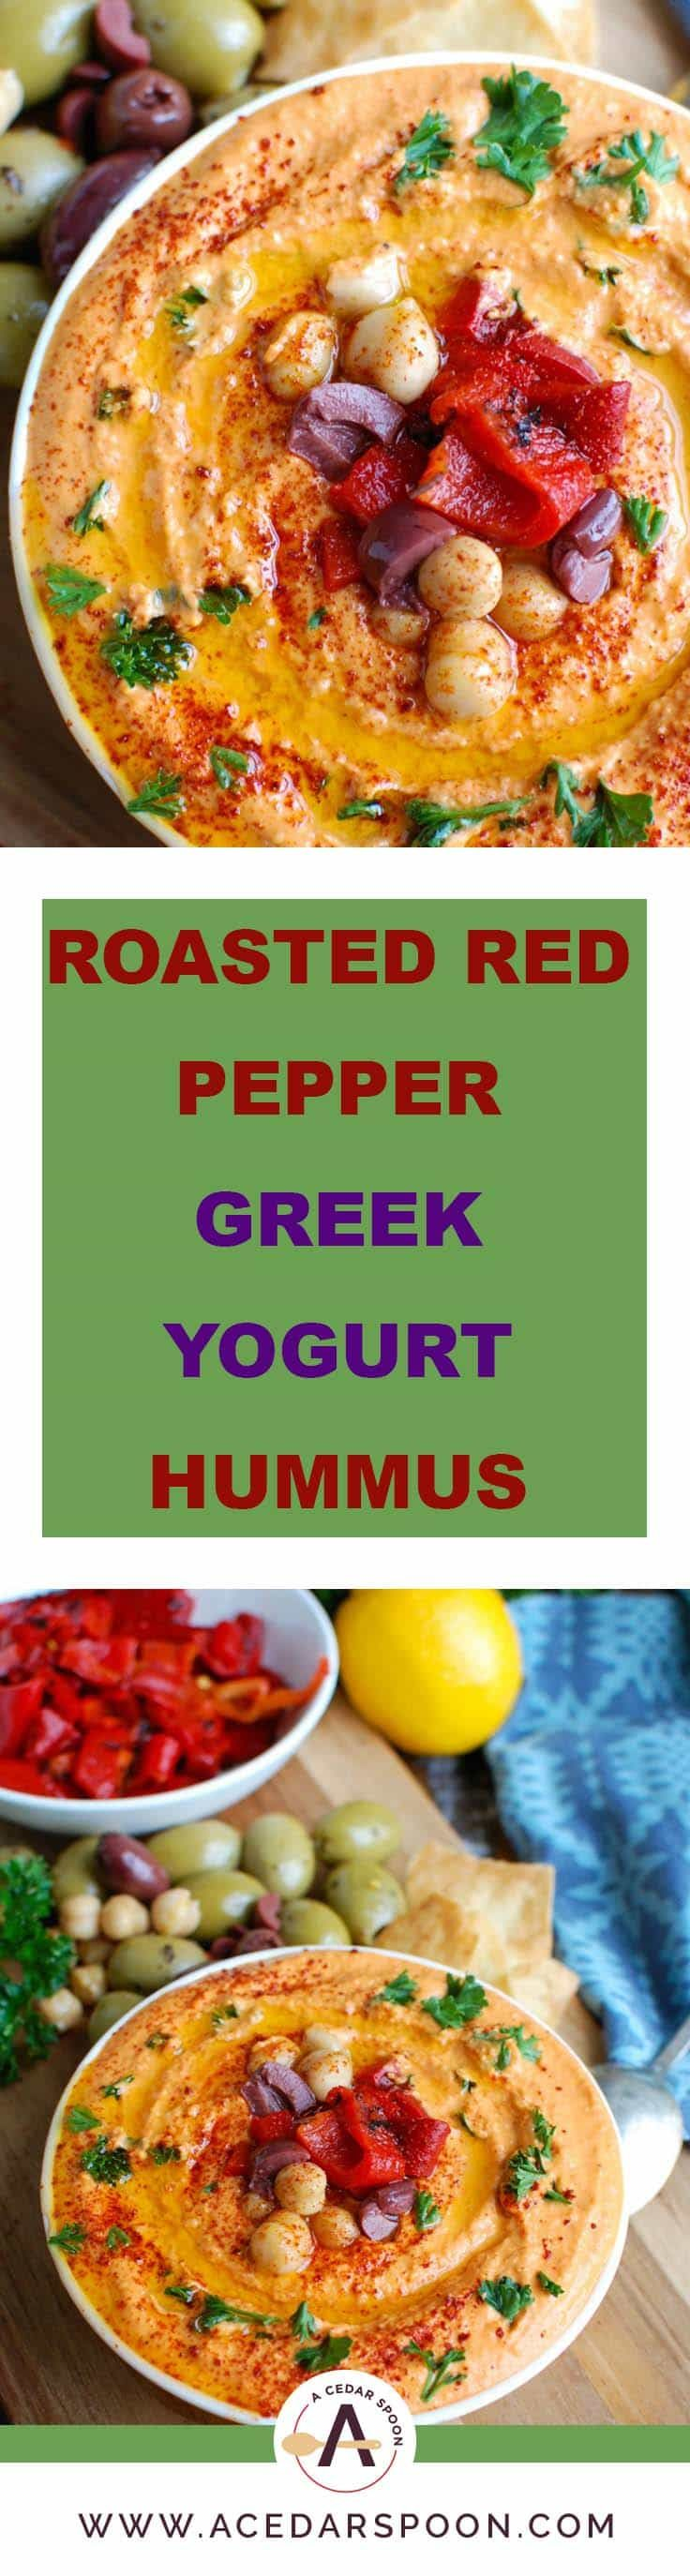 Roasted Red Pepper Greek Yogurt Hummus is a creamy dip that pairs nicely with pita bread or fresh vegetables. Chickpeas, tahini, lemon juice, spices and fire roasted red peppers are blended with Greek yogurt for added protein and creaminess making this not only healthy, but delicious!